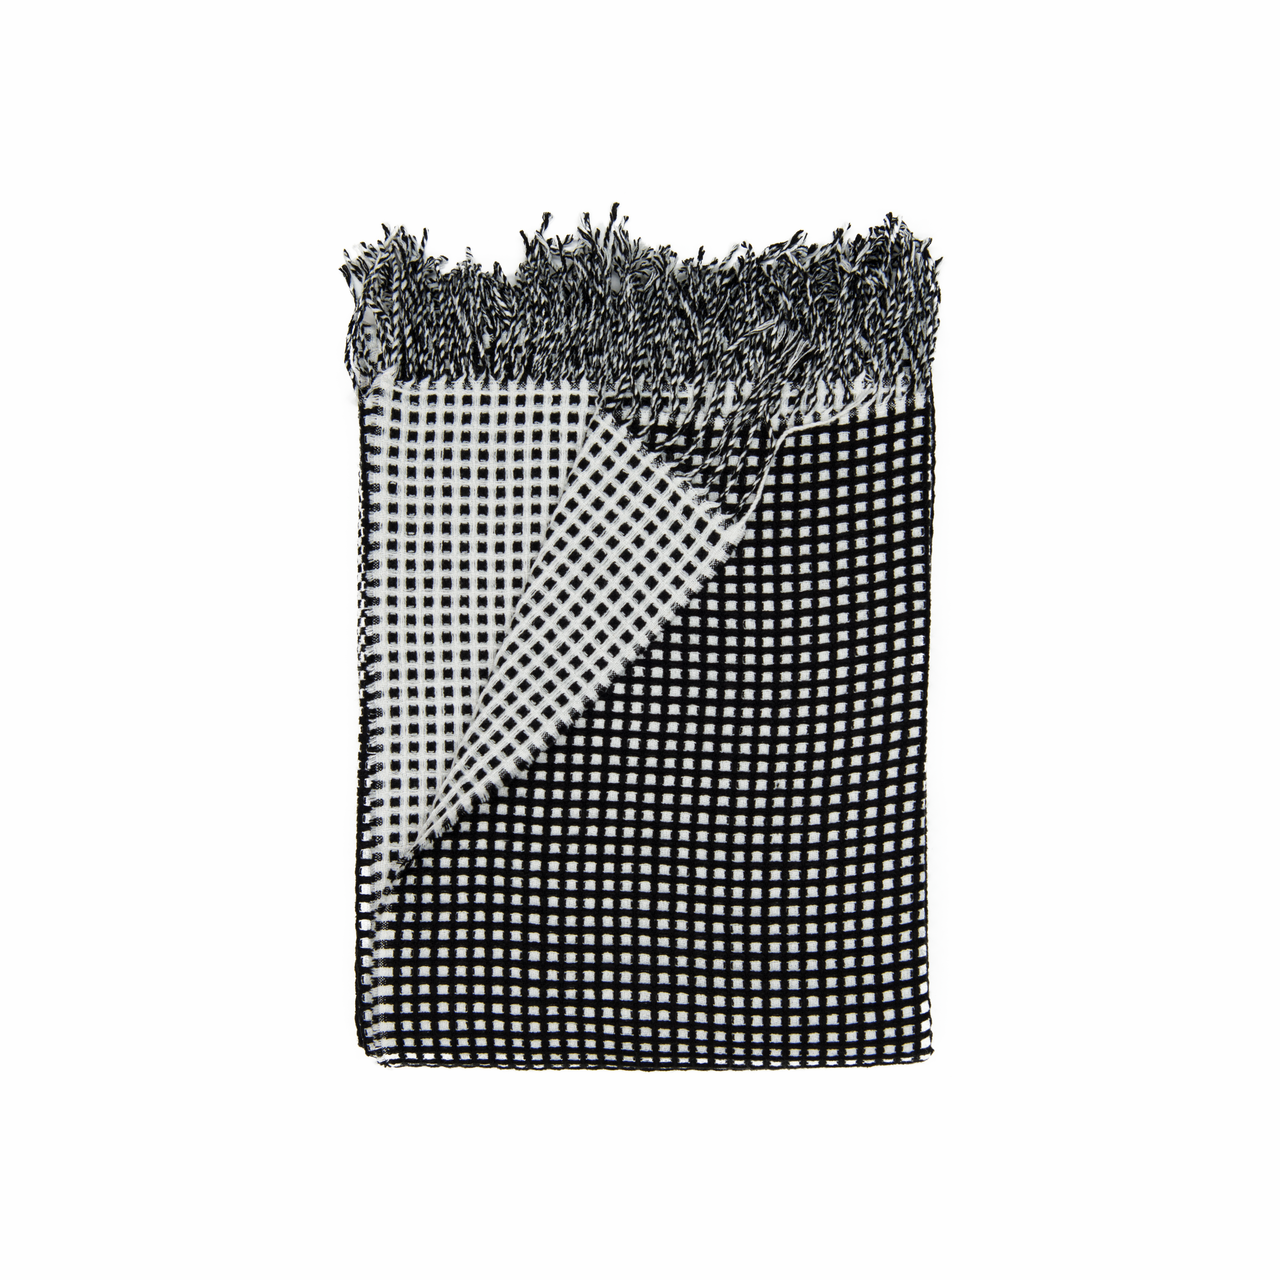 In 2 Linen Waffle Knitted Throw Rug   Natural & Black